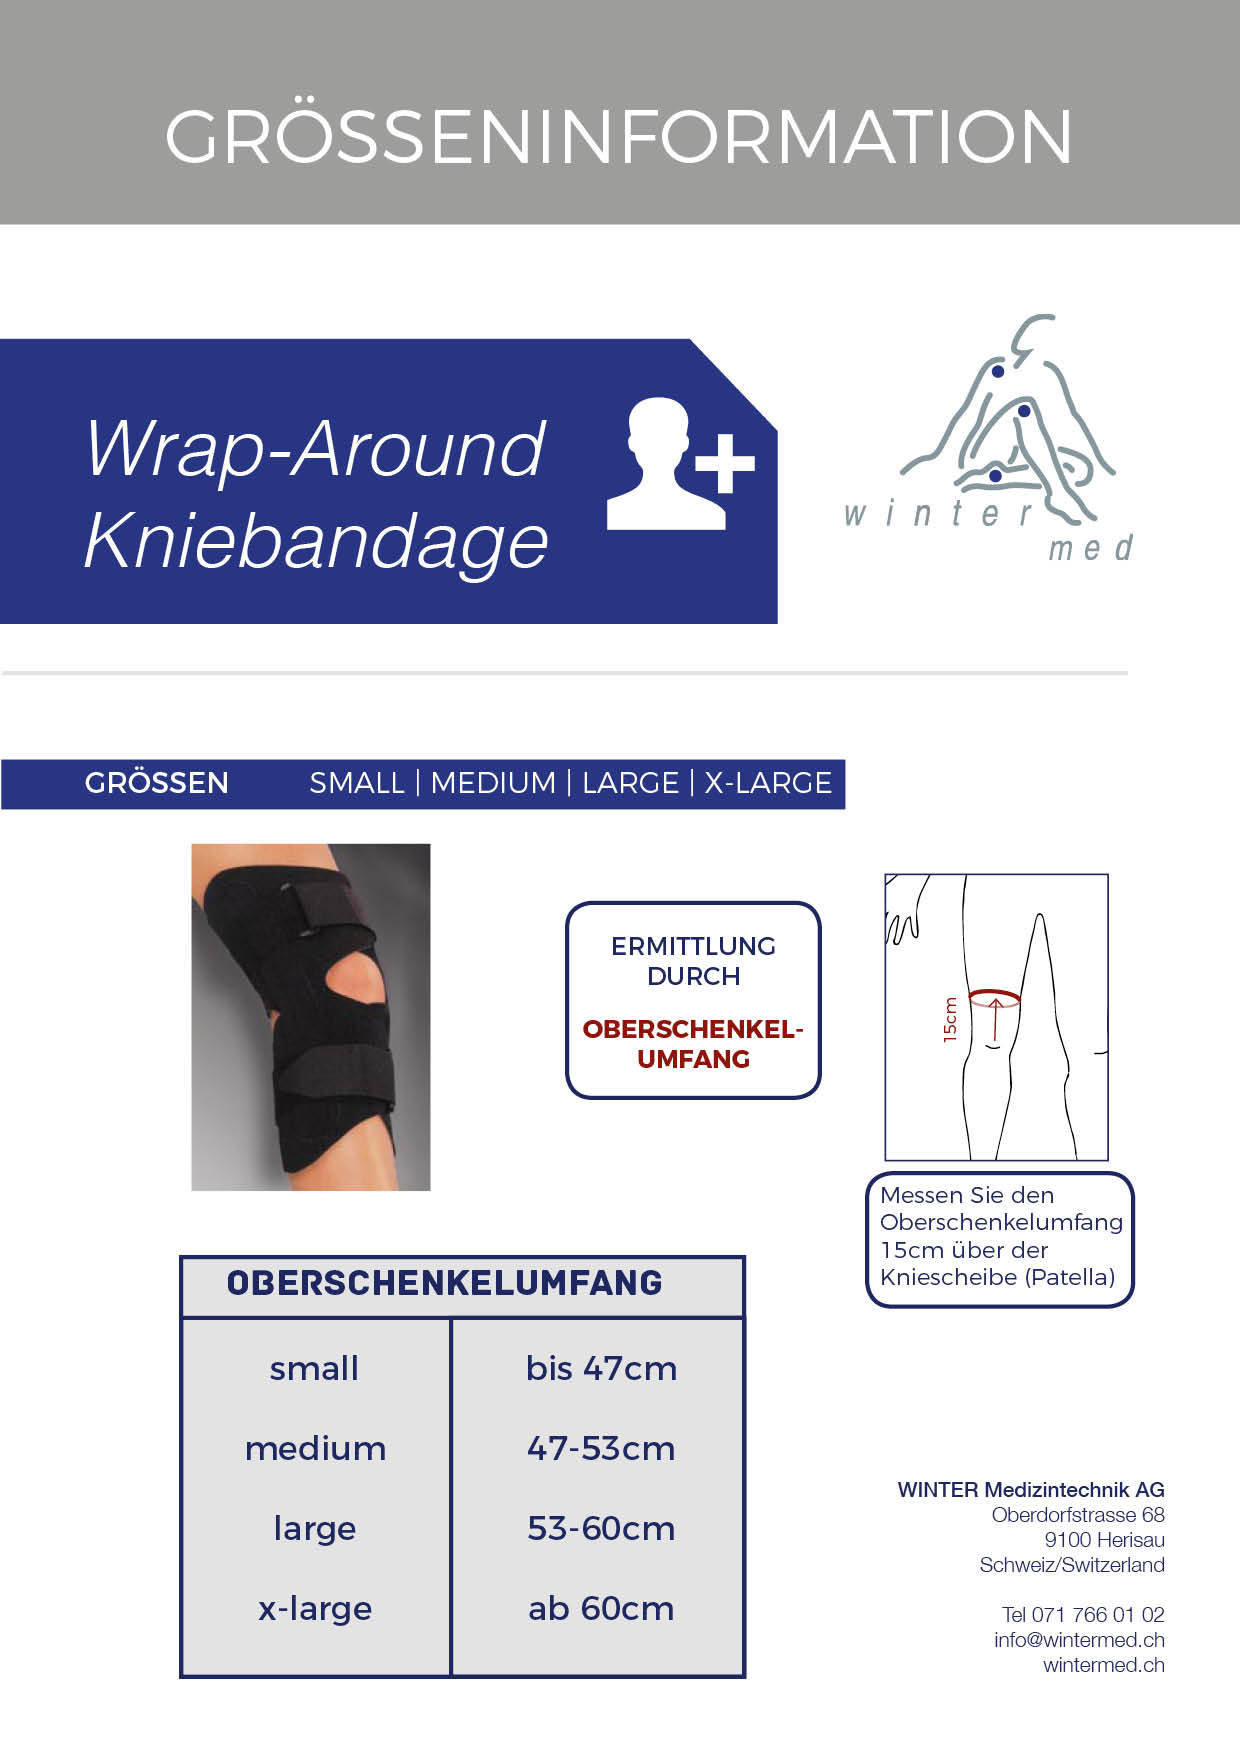 Grössentabelle der Wrap Around Kniebandage